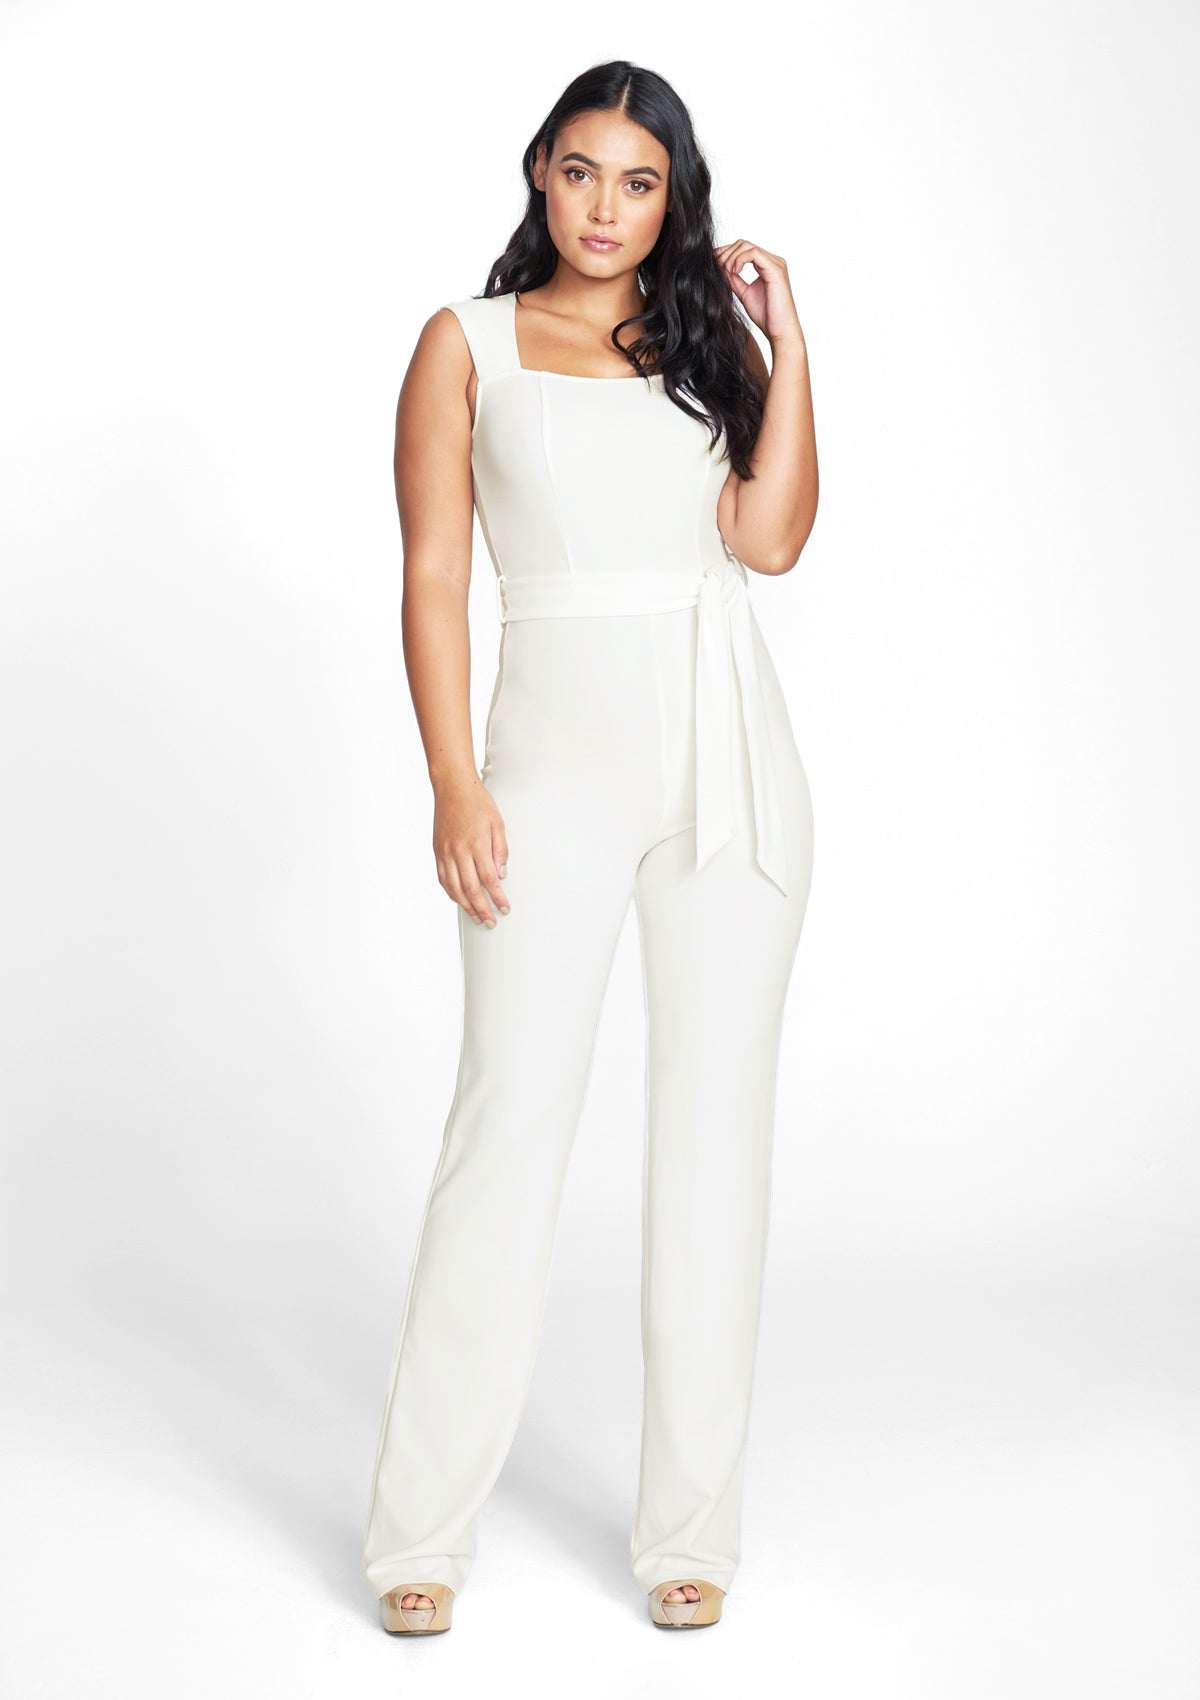 Alloy Apparel Tall Ava Jumpsuit 2.0 for Women in Ivory Size XL   Polyester